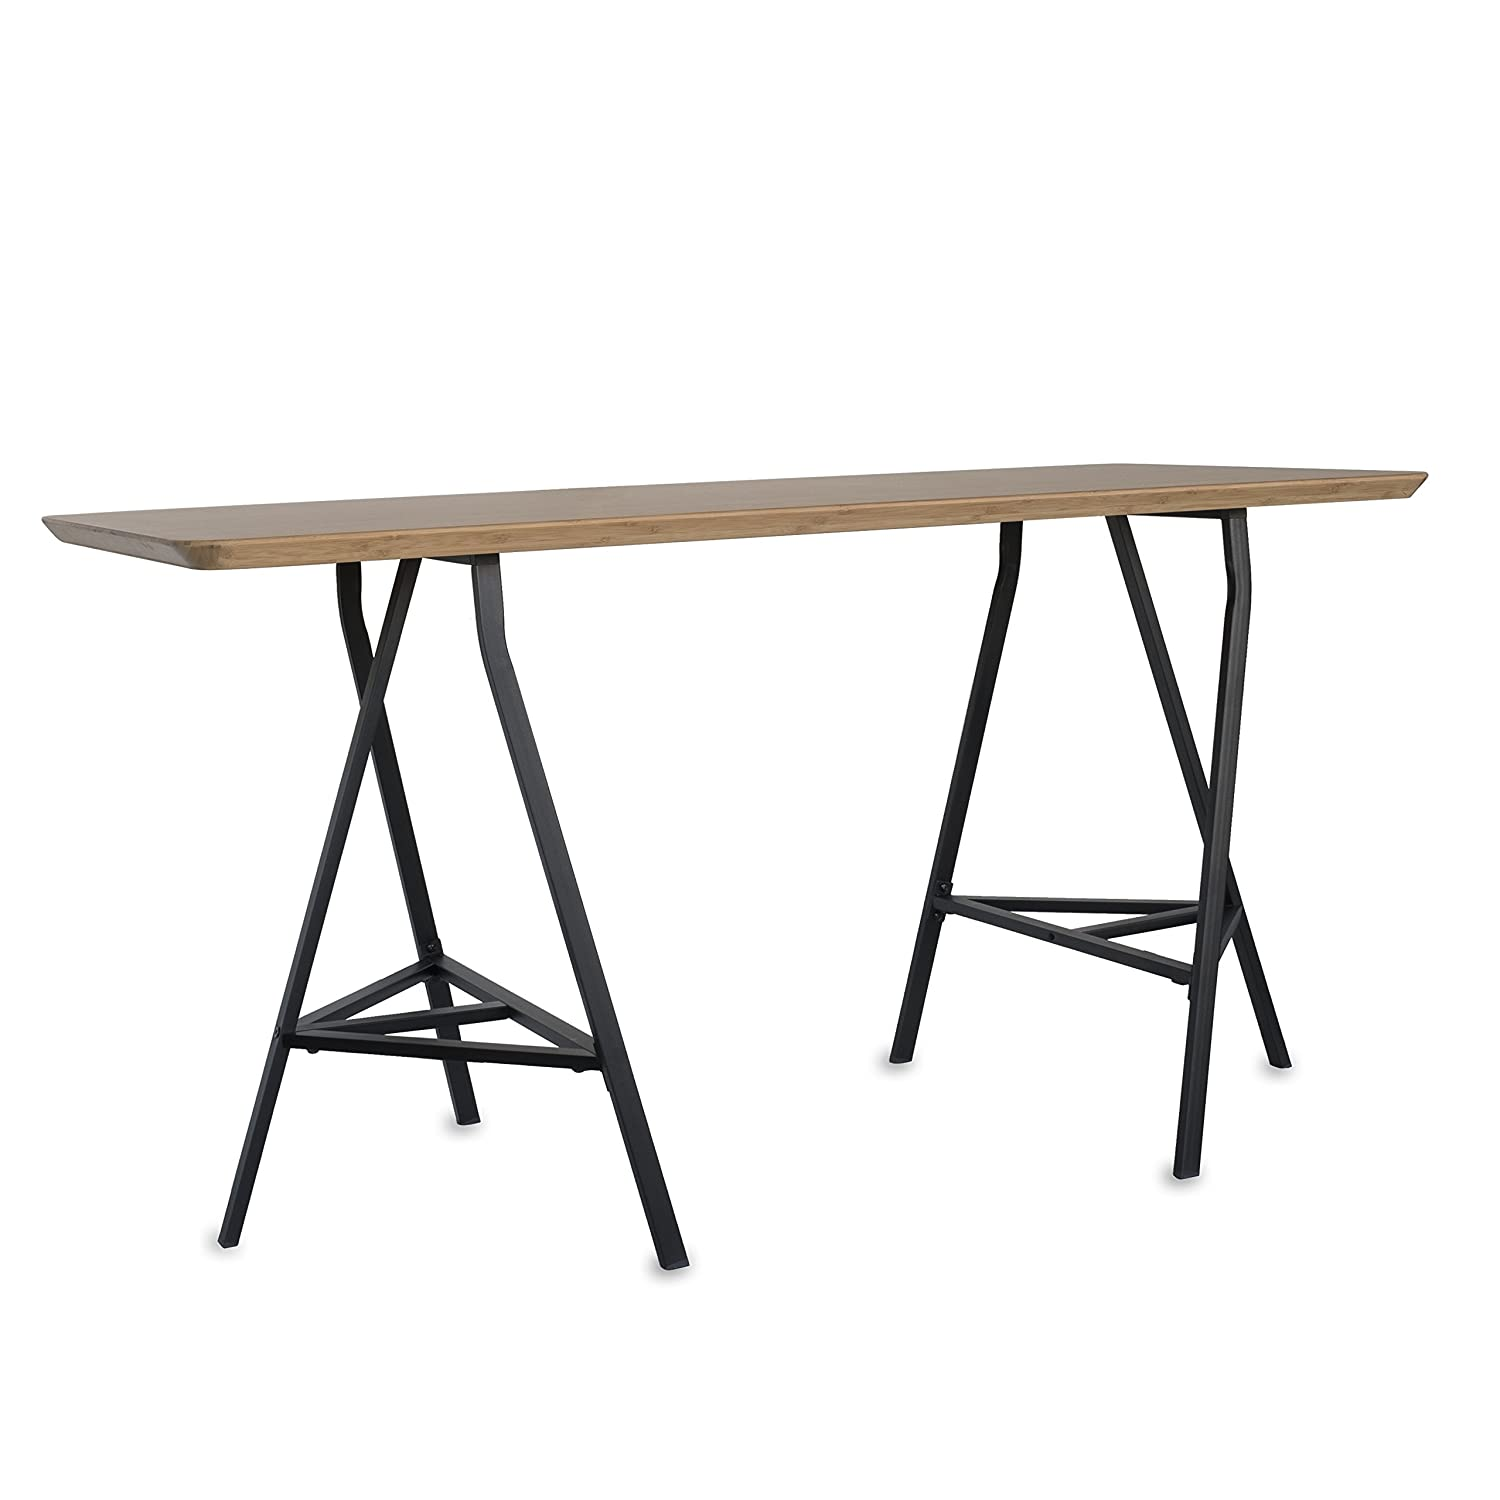 Amazon.com: Sturdy Crosscut Trestle Table Legs ,28 Inch Perfect For Home  Office Desk , Work Station Or Table ,Pack Of 2 (Black With Storage):  Kitchen U0026 ...